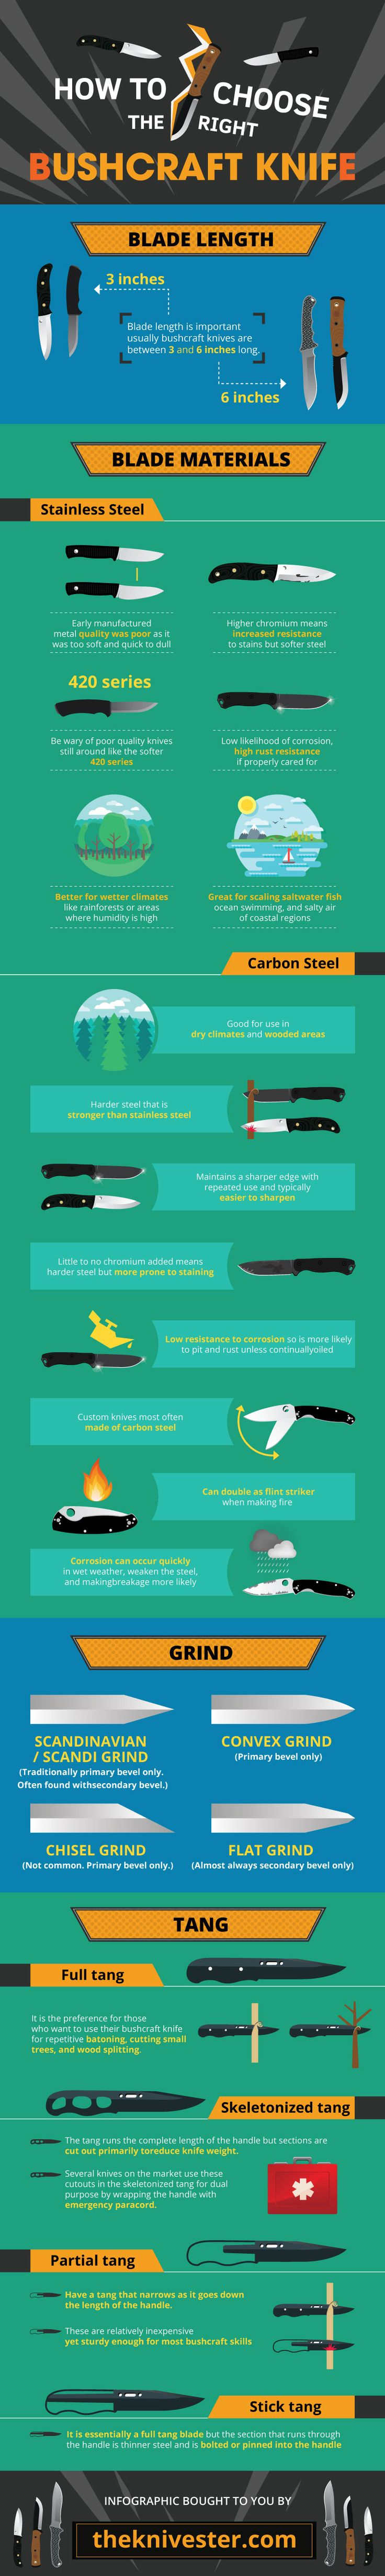 How to choose the right bushcraft knife view more http